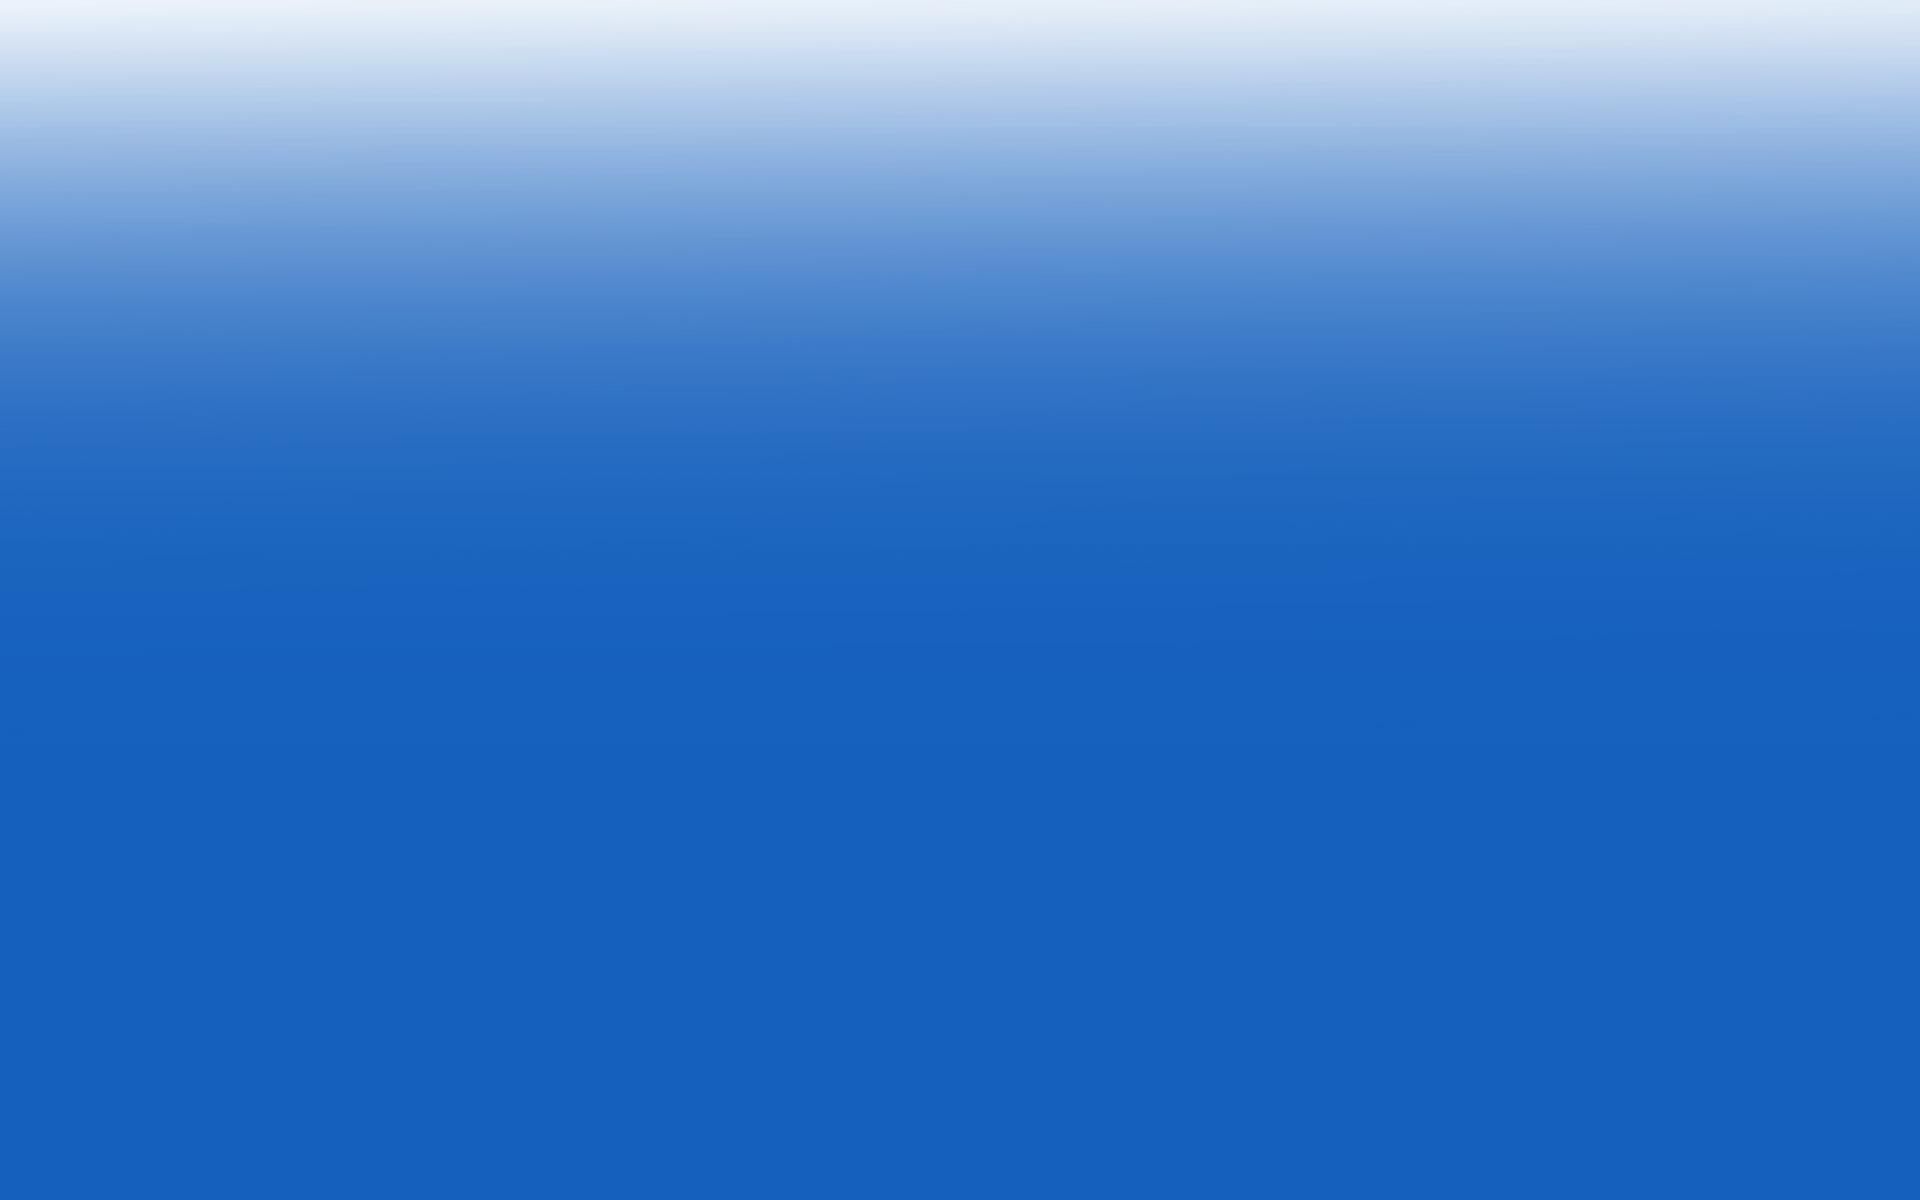 146424_blue-and-white-wallpaper